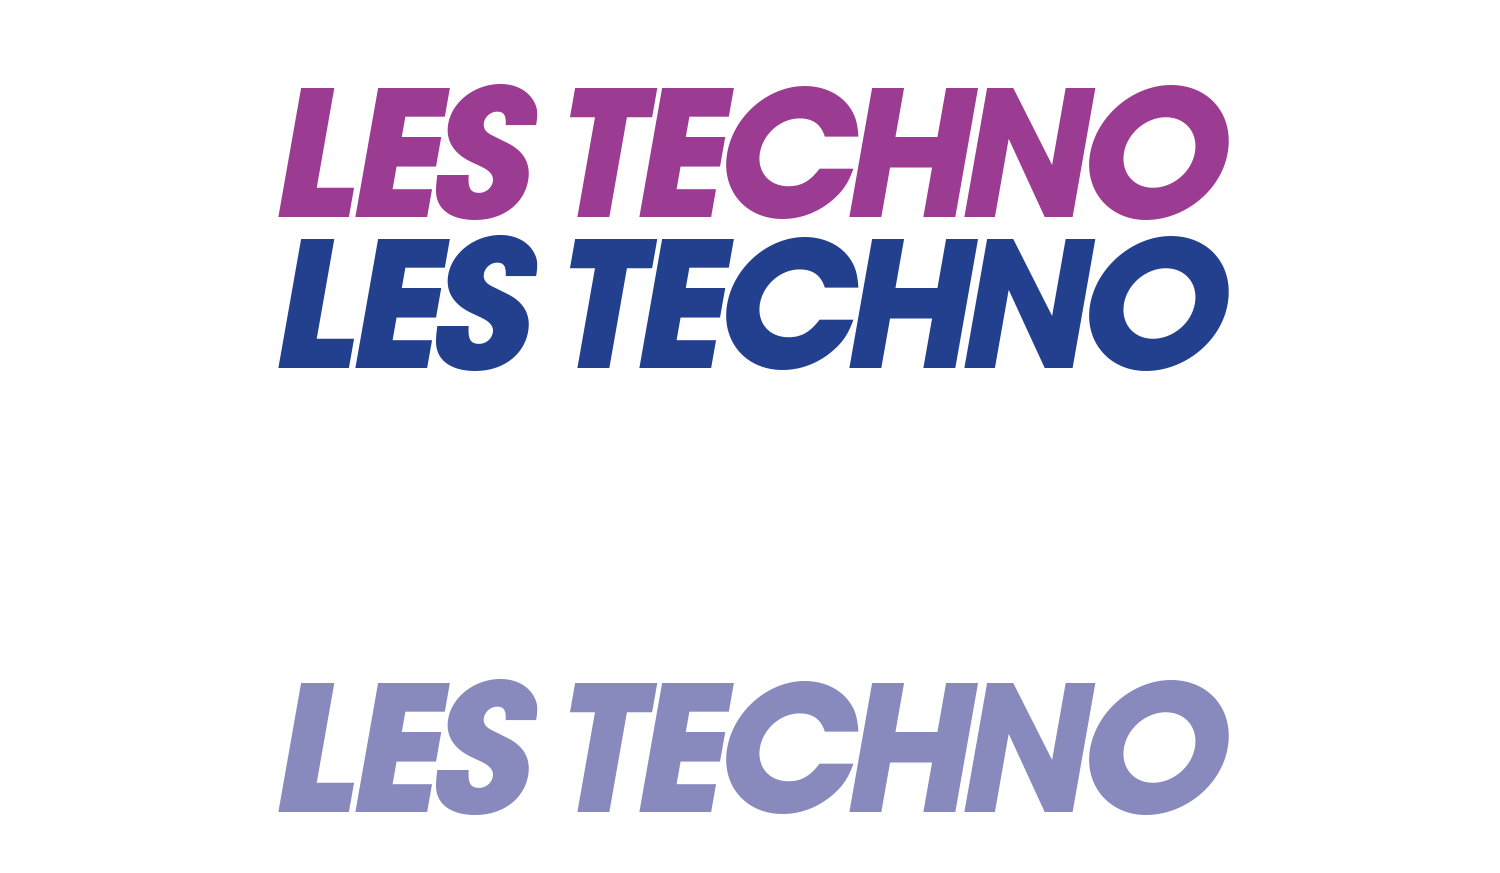 Les techno Web page WATCH 2